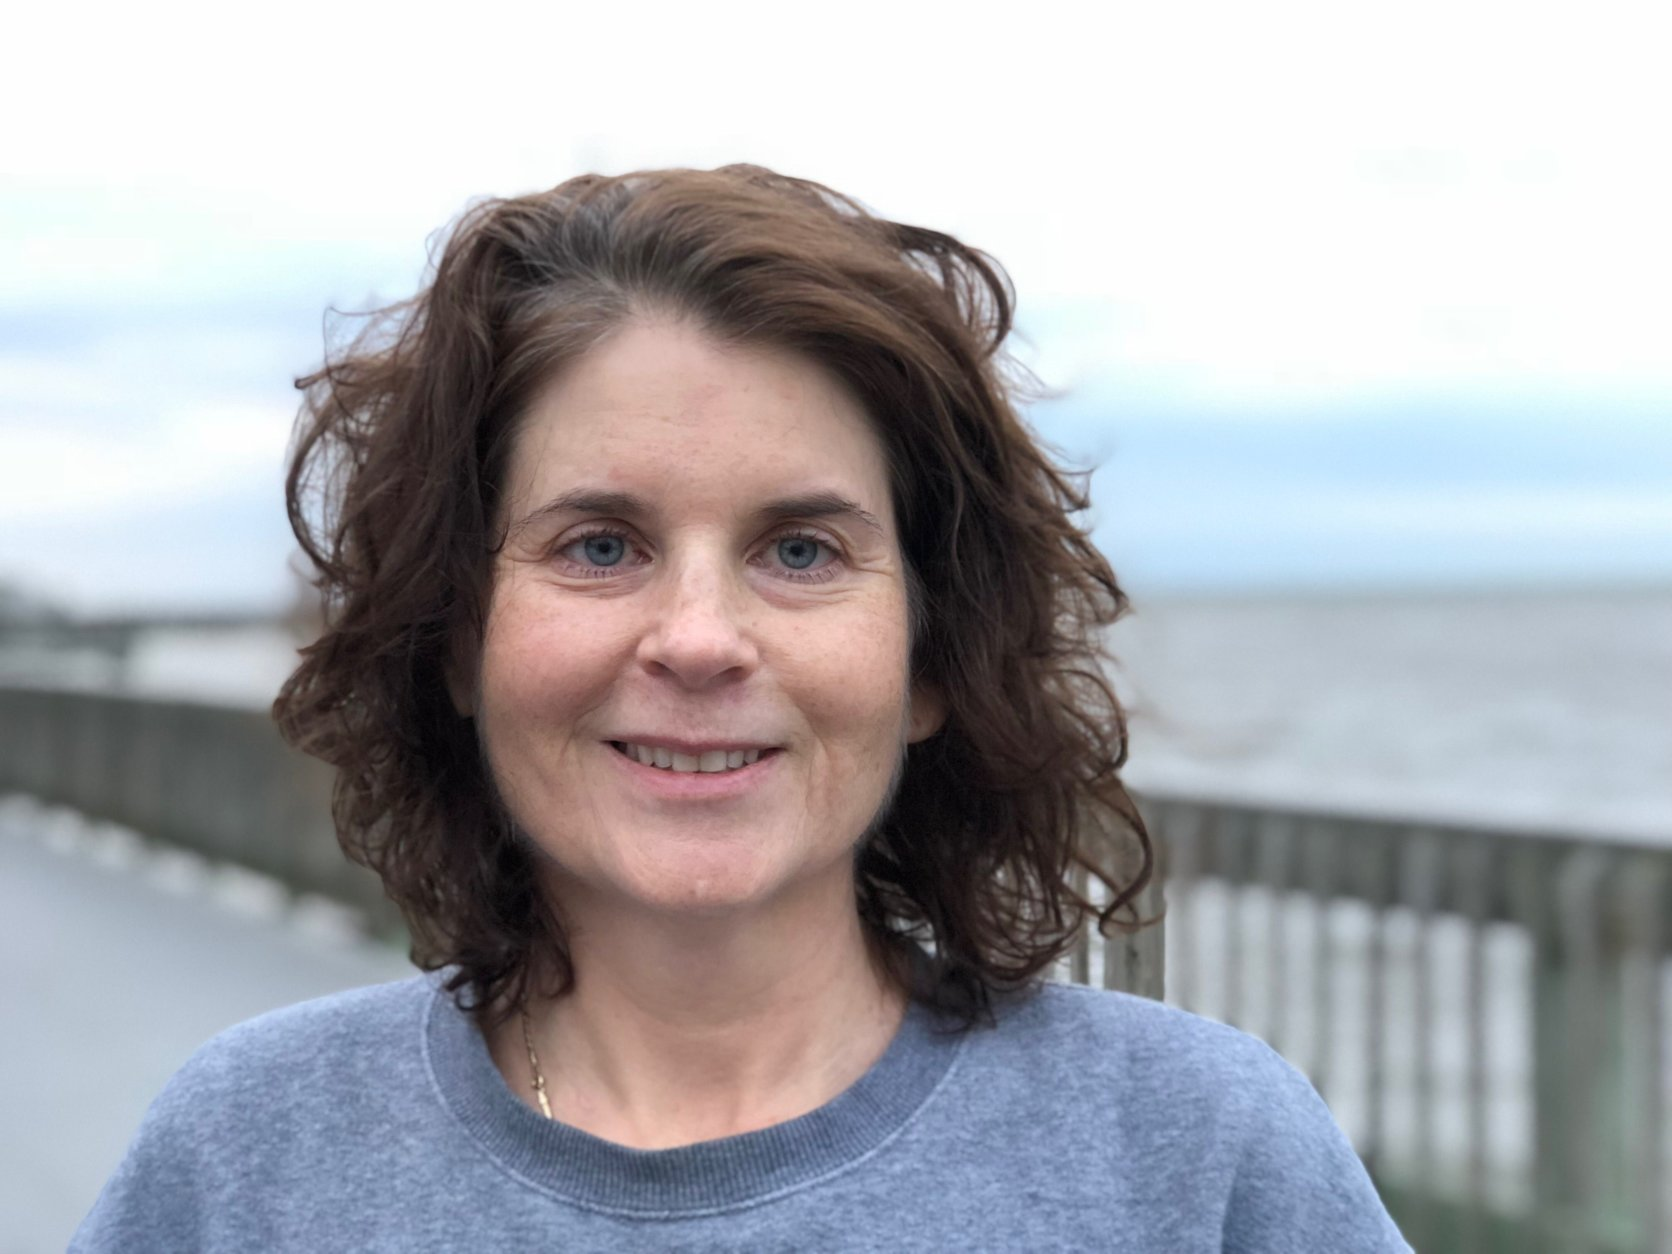 Linda Bednarski of Calvert County says health care costs and lower taxes for retirees are important to her. She wrote to Governor Larry Hogan two years ago and says she was very impressed with the detailed and timely response from his administration (WTOP/Kate Ryan).